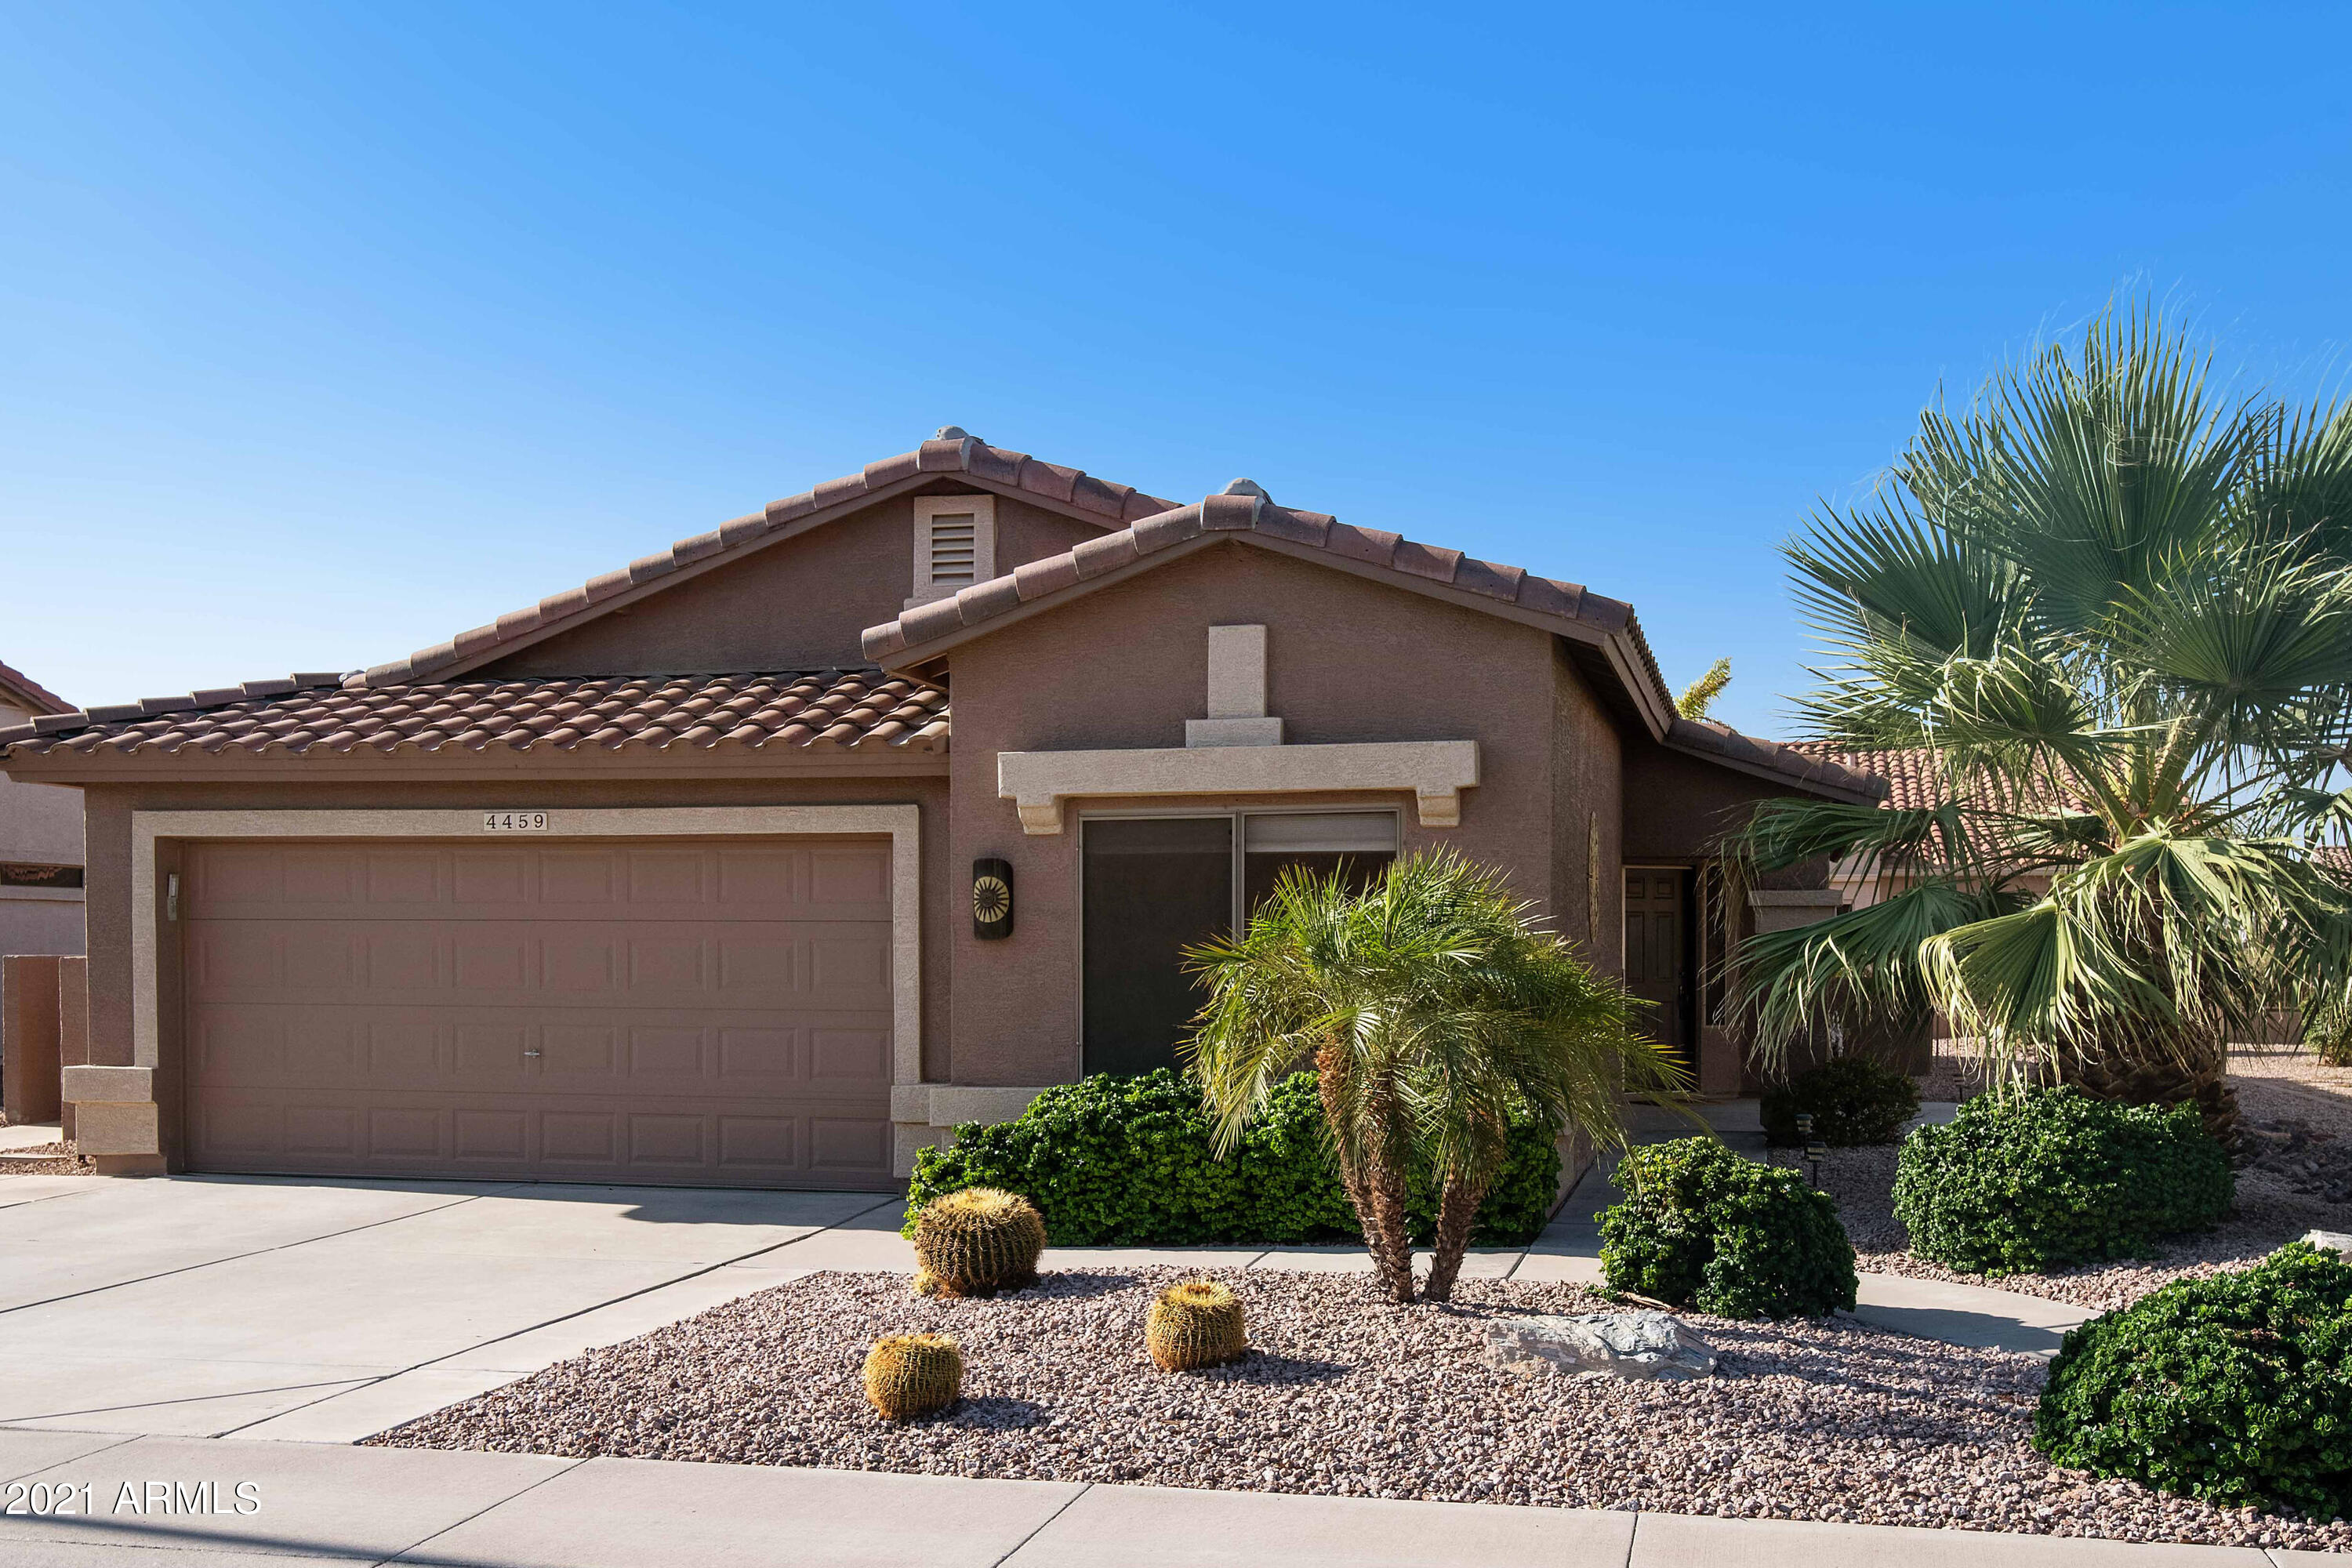 4459 STRAWBERRY Drive, Gilbert, Arizona 85298, 2 Bedrooms Bedrooms, ,2 BathroomsBathrooms,Residential,For Sale,STRAWBERRY,6257854